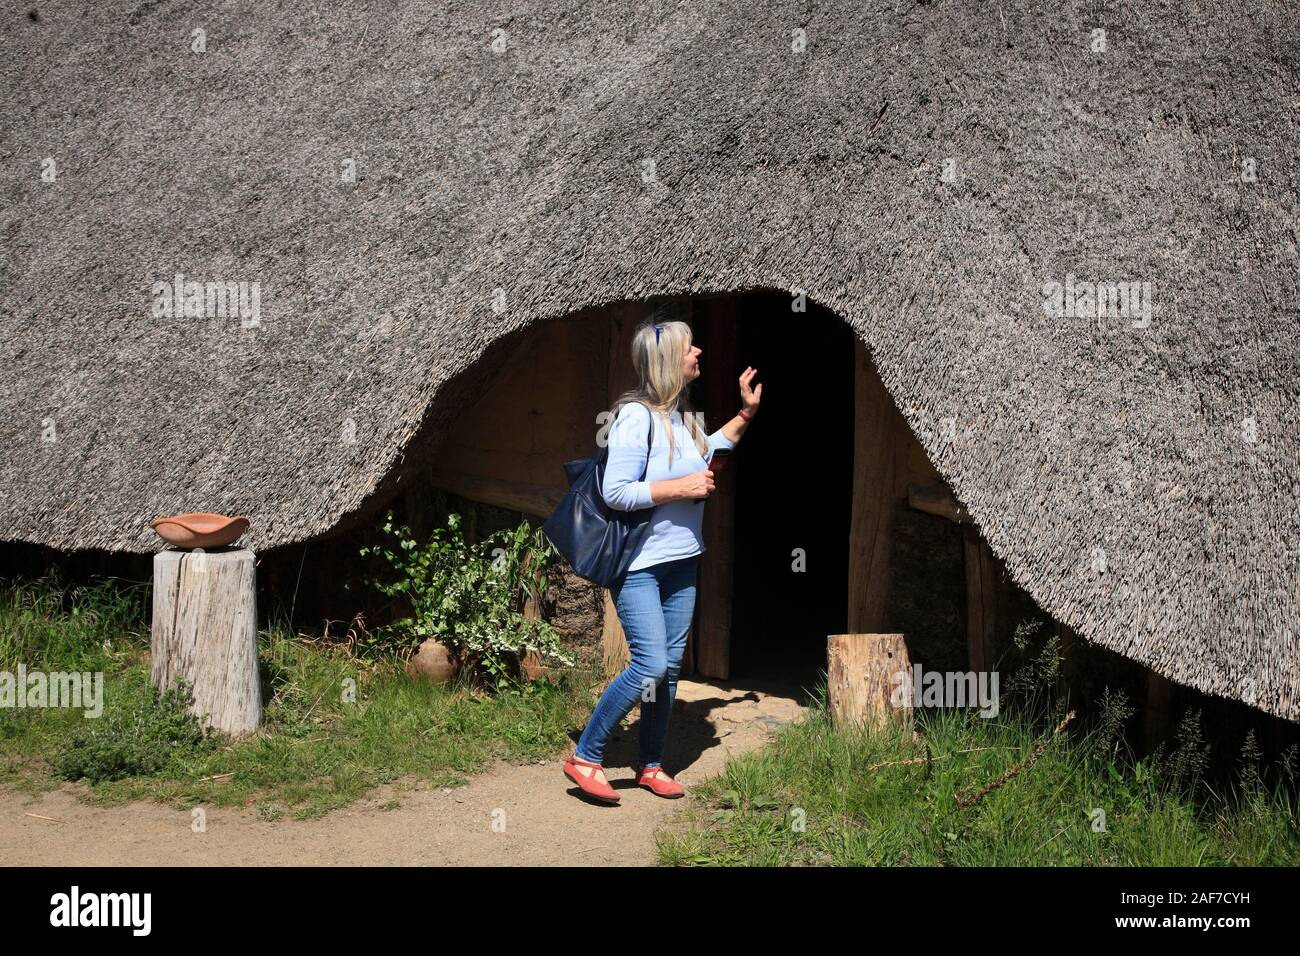 Long house in the Open air museum Archäologisches Zentrum, Hitzacker / Elbe, Lower Saxony, Germany Stock Photo